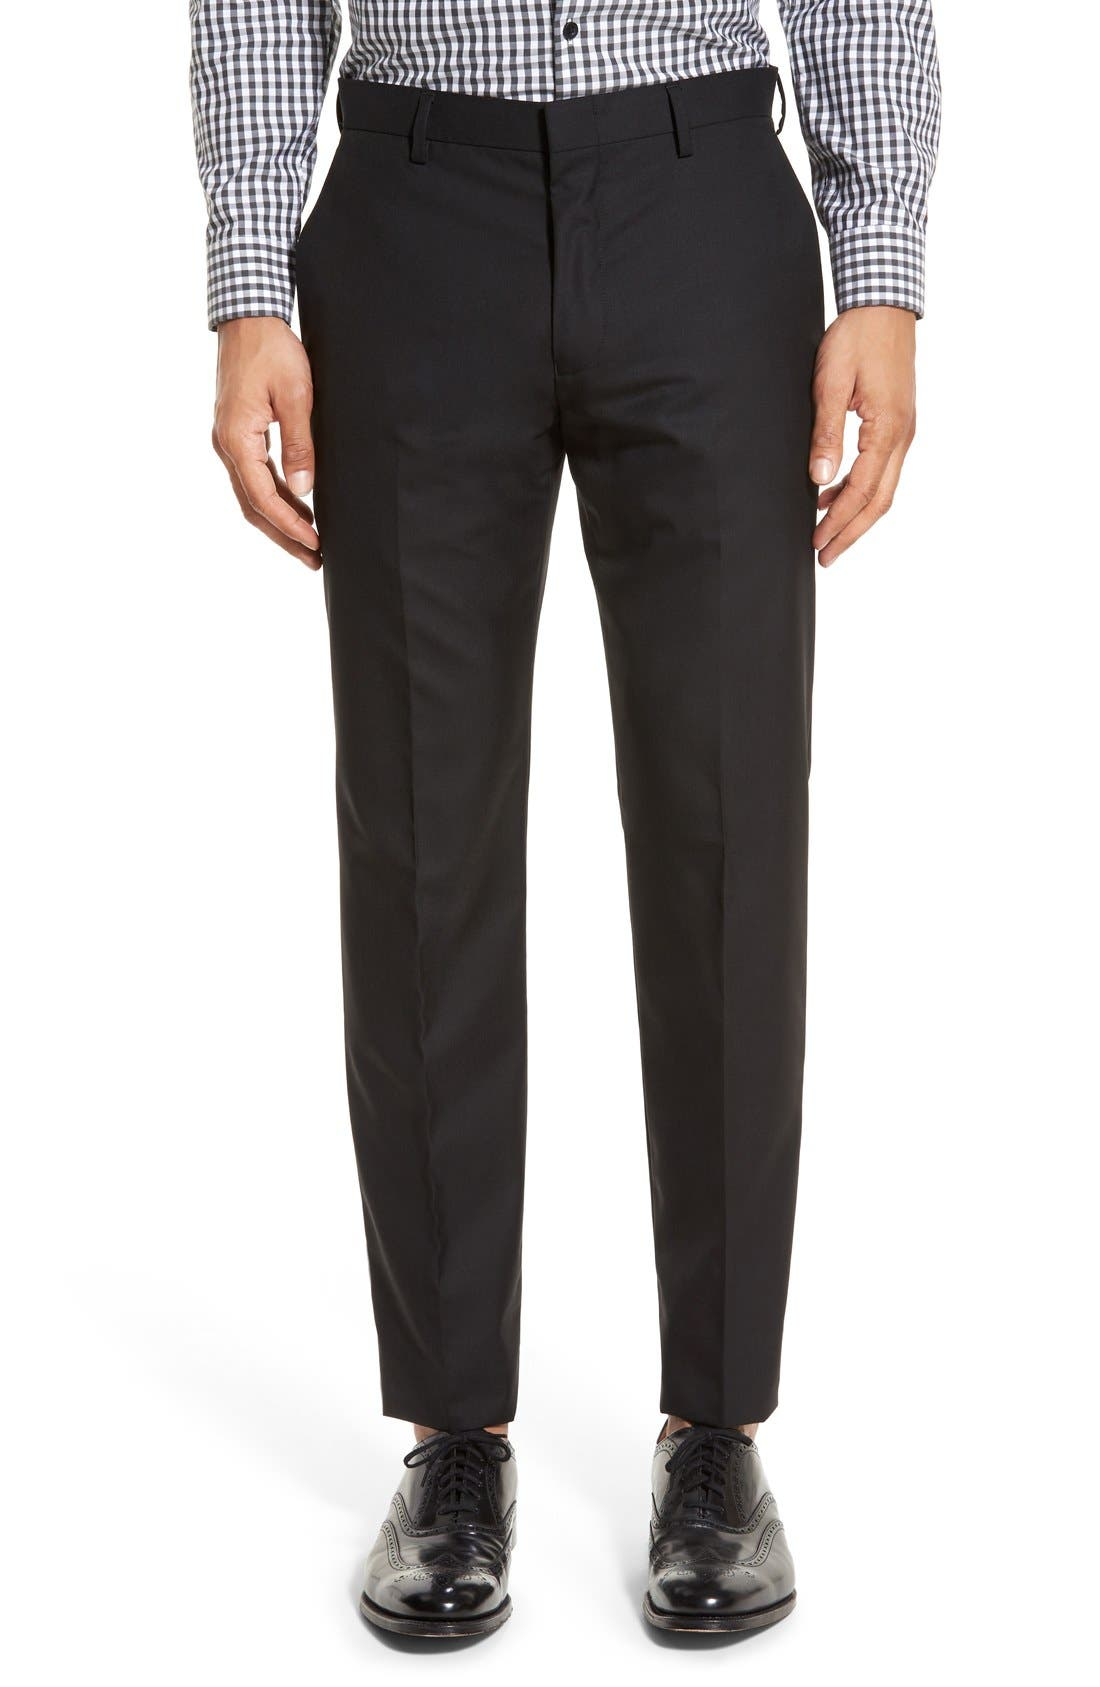 J.CREW Ludlow Flat Front Solid Wool Trousers